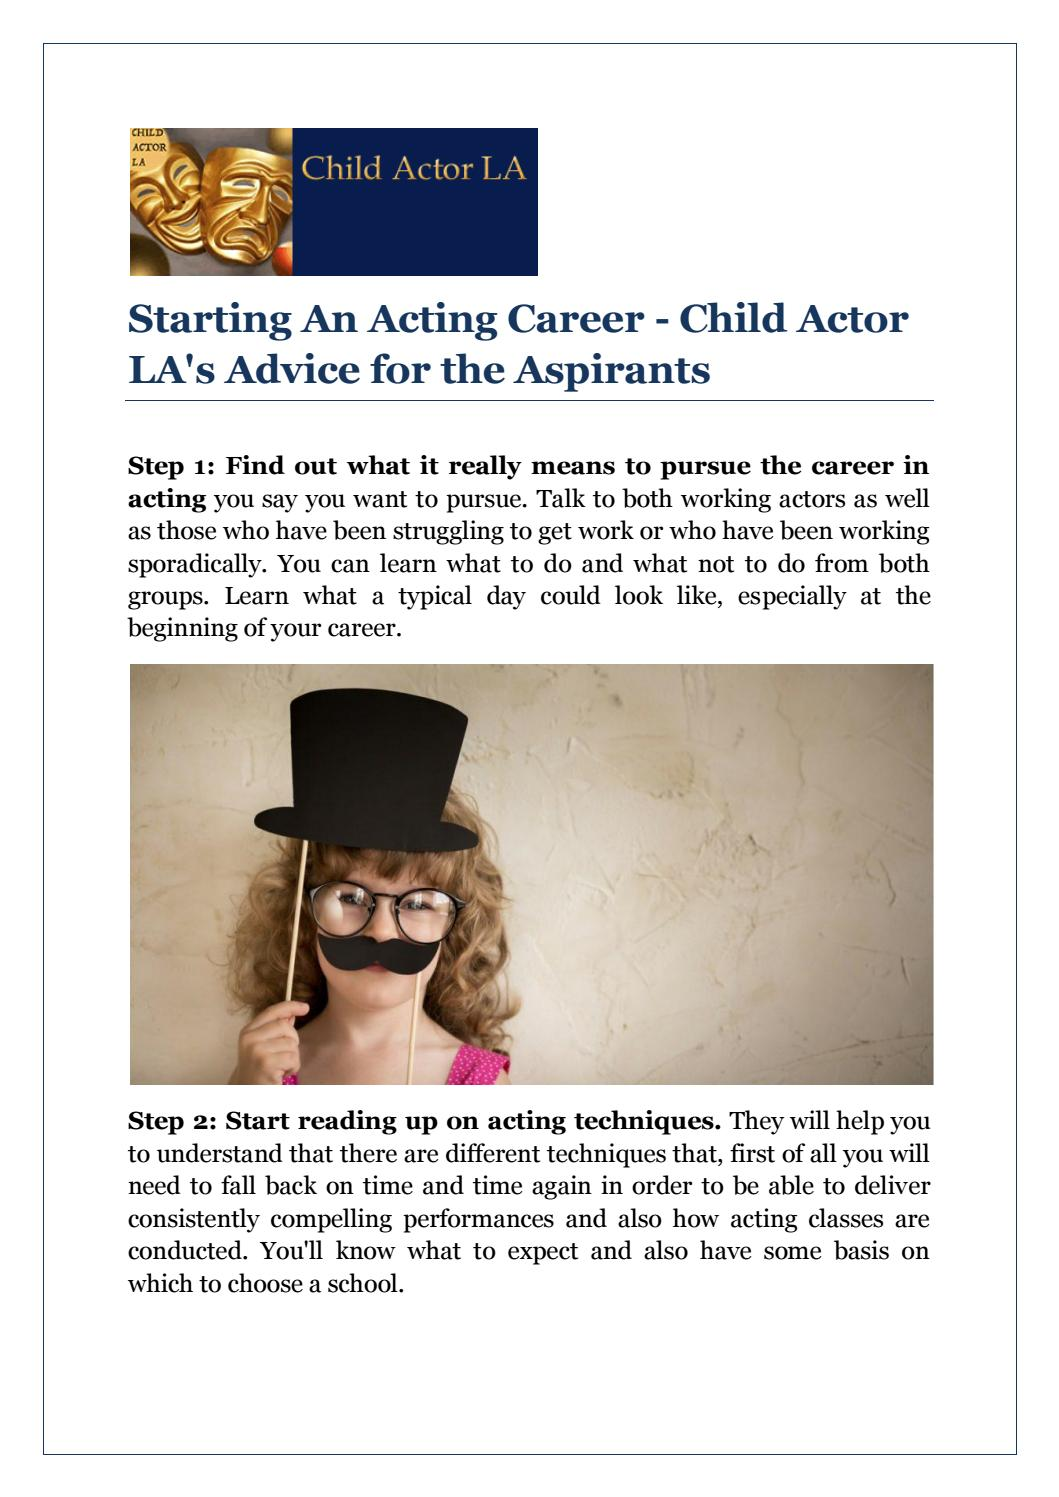 Starting An Acting Career - Child Actor LA's Advice for the